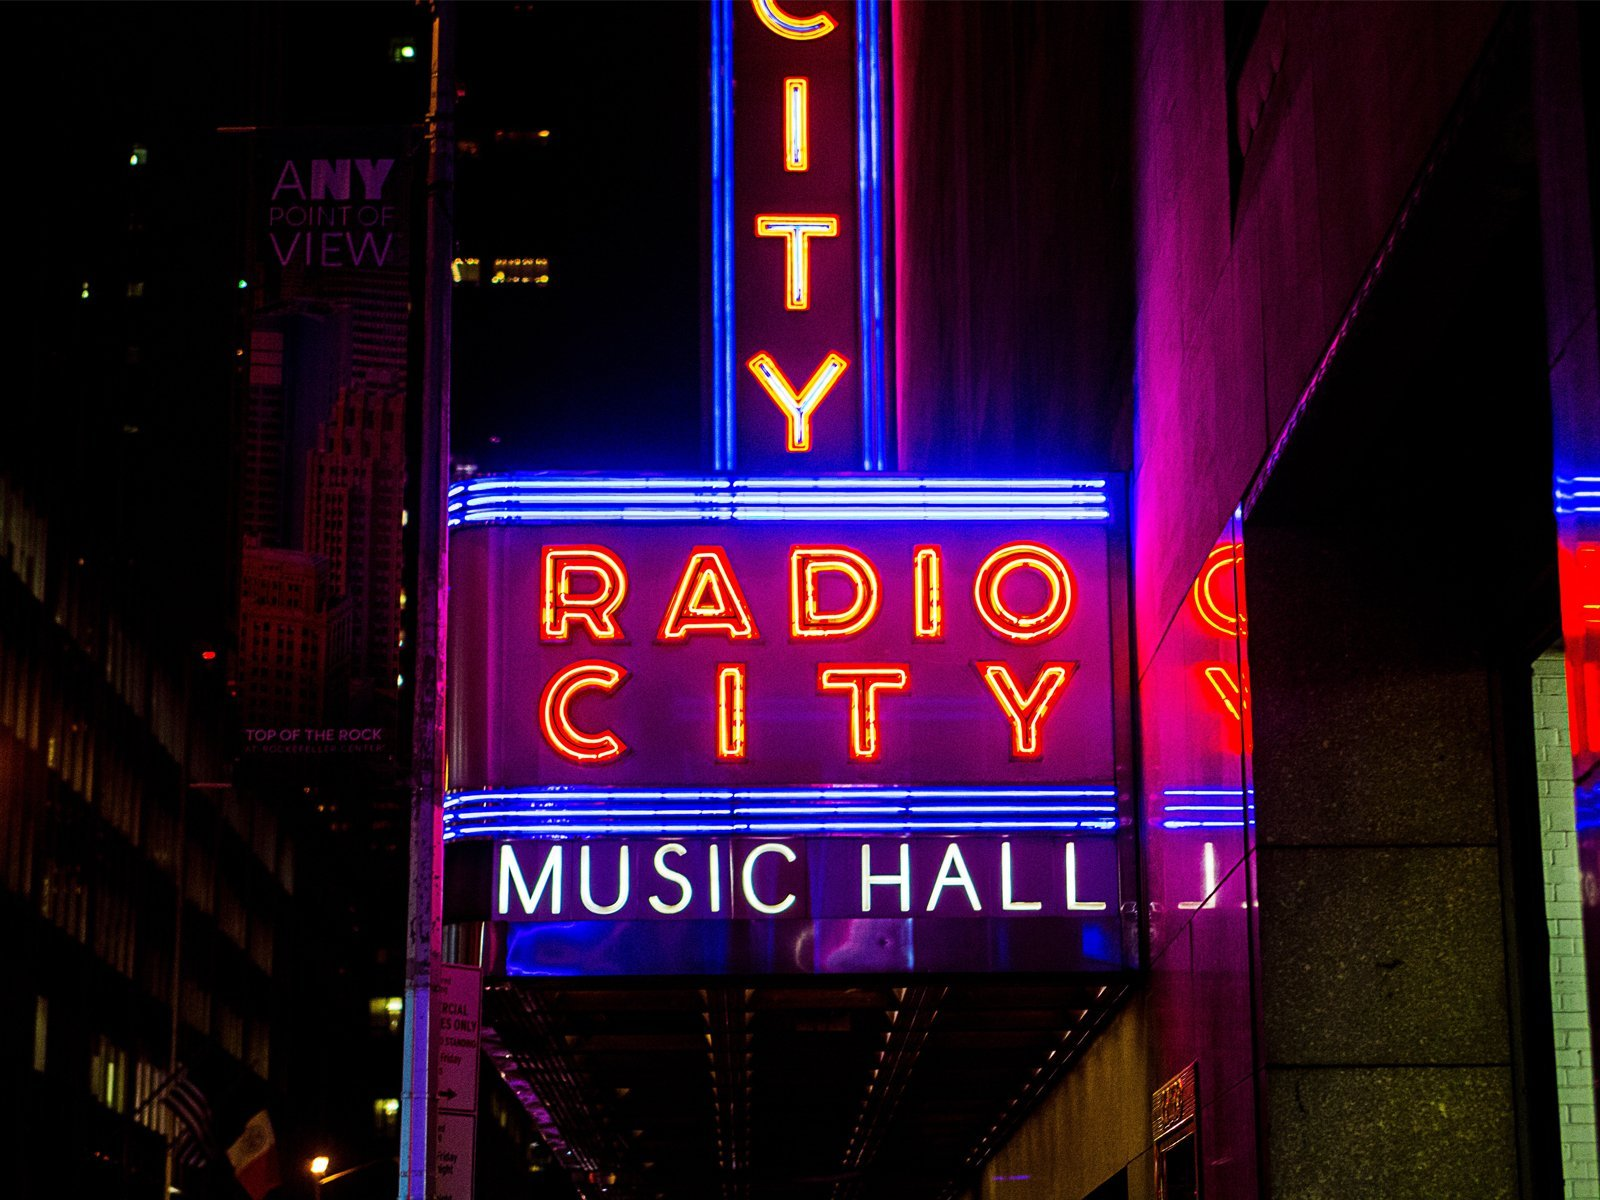 a view of the sign for Radio City Music Hall in New York City